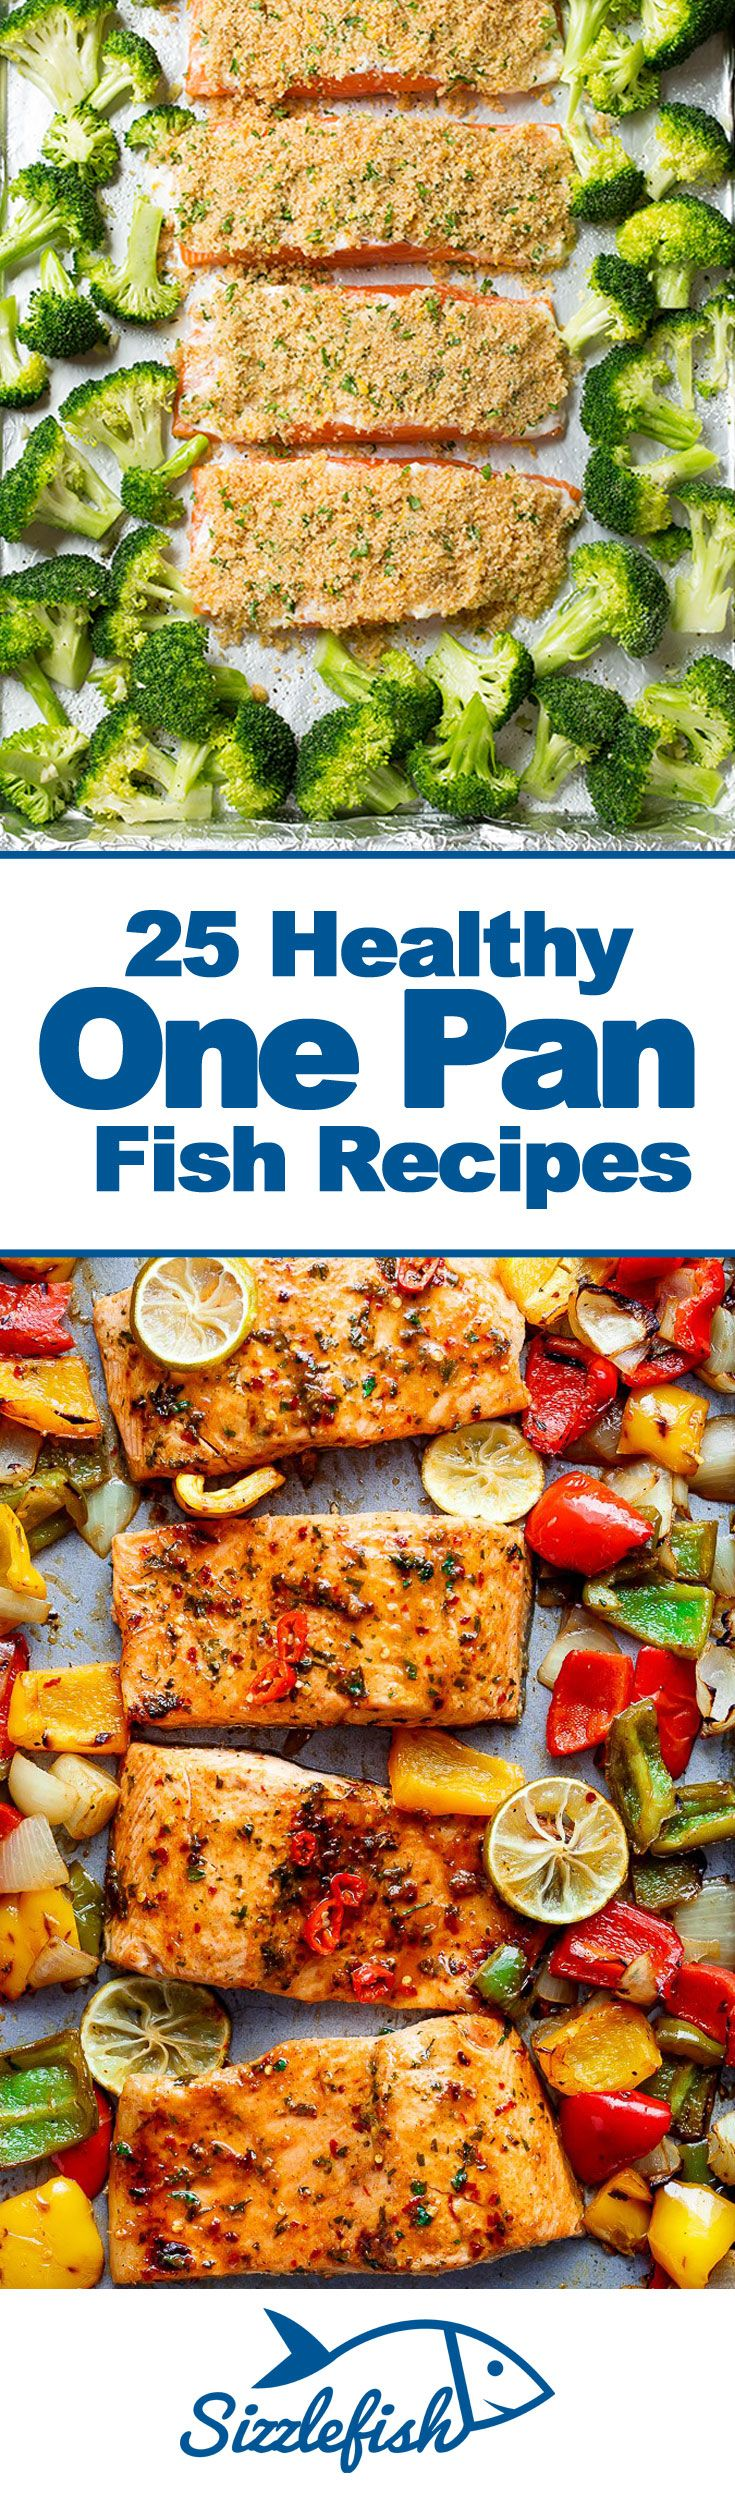 Easy to make, easy to clean up and an easy way to get a healthy and nutritious meal on the table - these 25 Healthy One Pan Fish Recipes are your secret to healthy eating success!